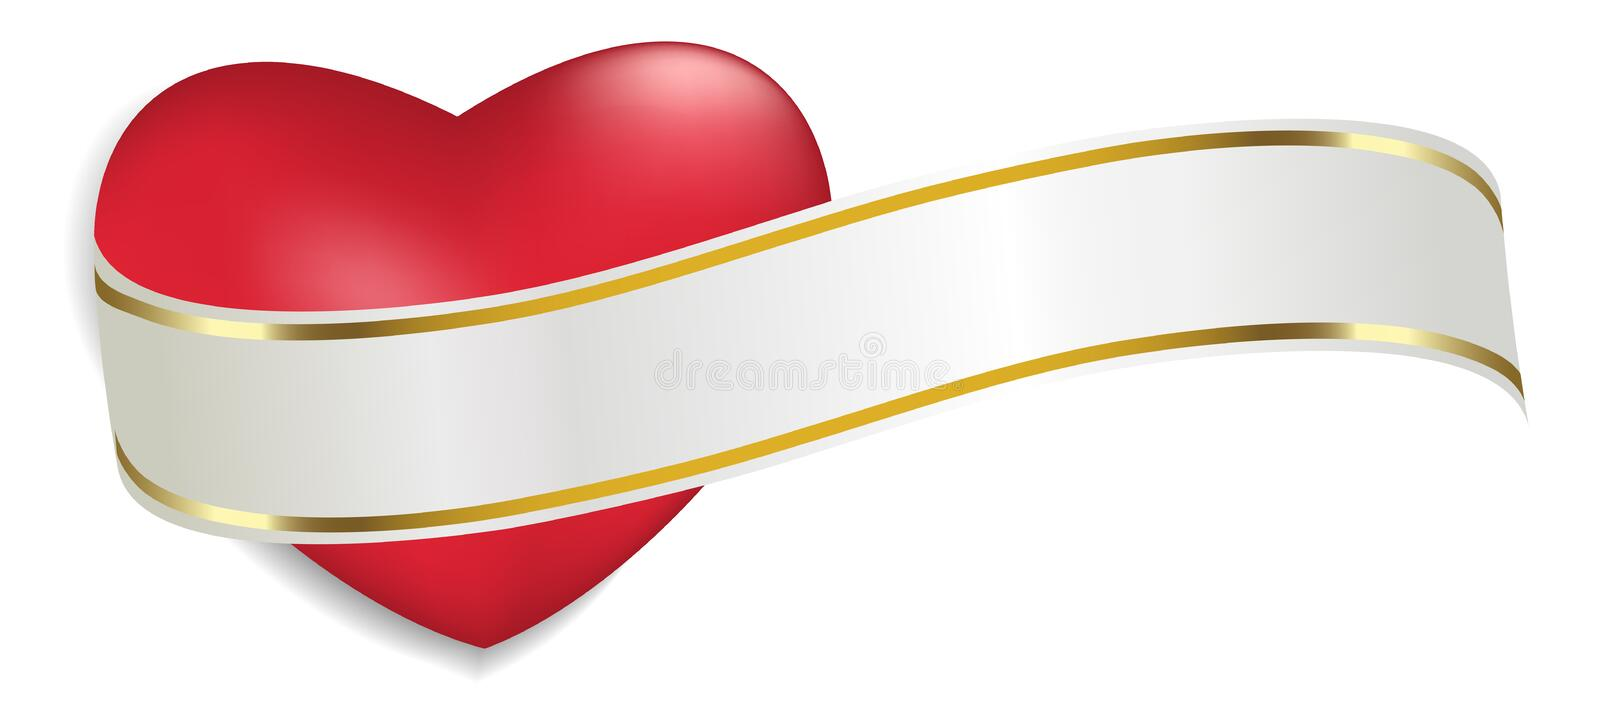 Red heart with white and Golden ribbon isolated on white background. Decoration for Valentine`s day and other holidays. Vector vector illustration